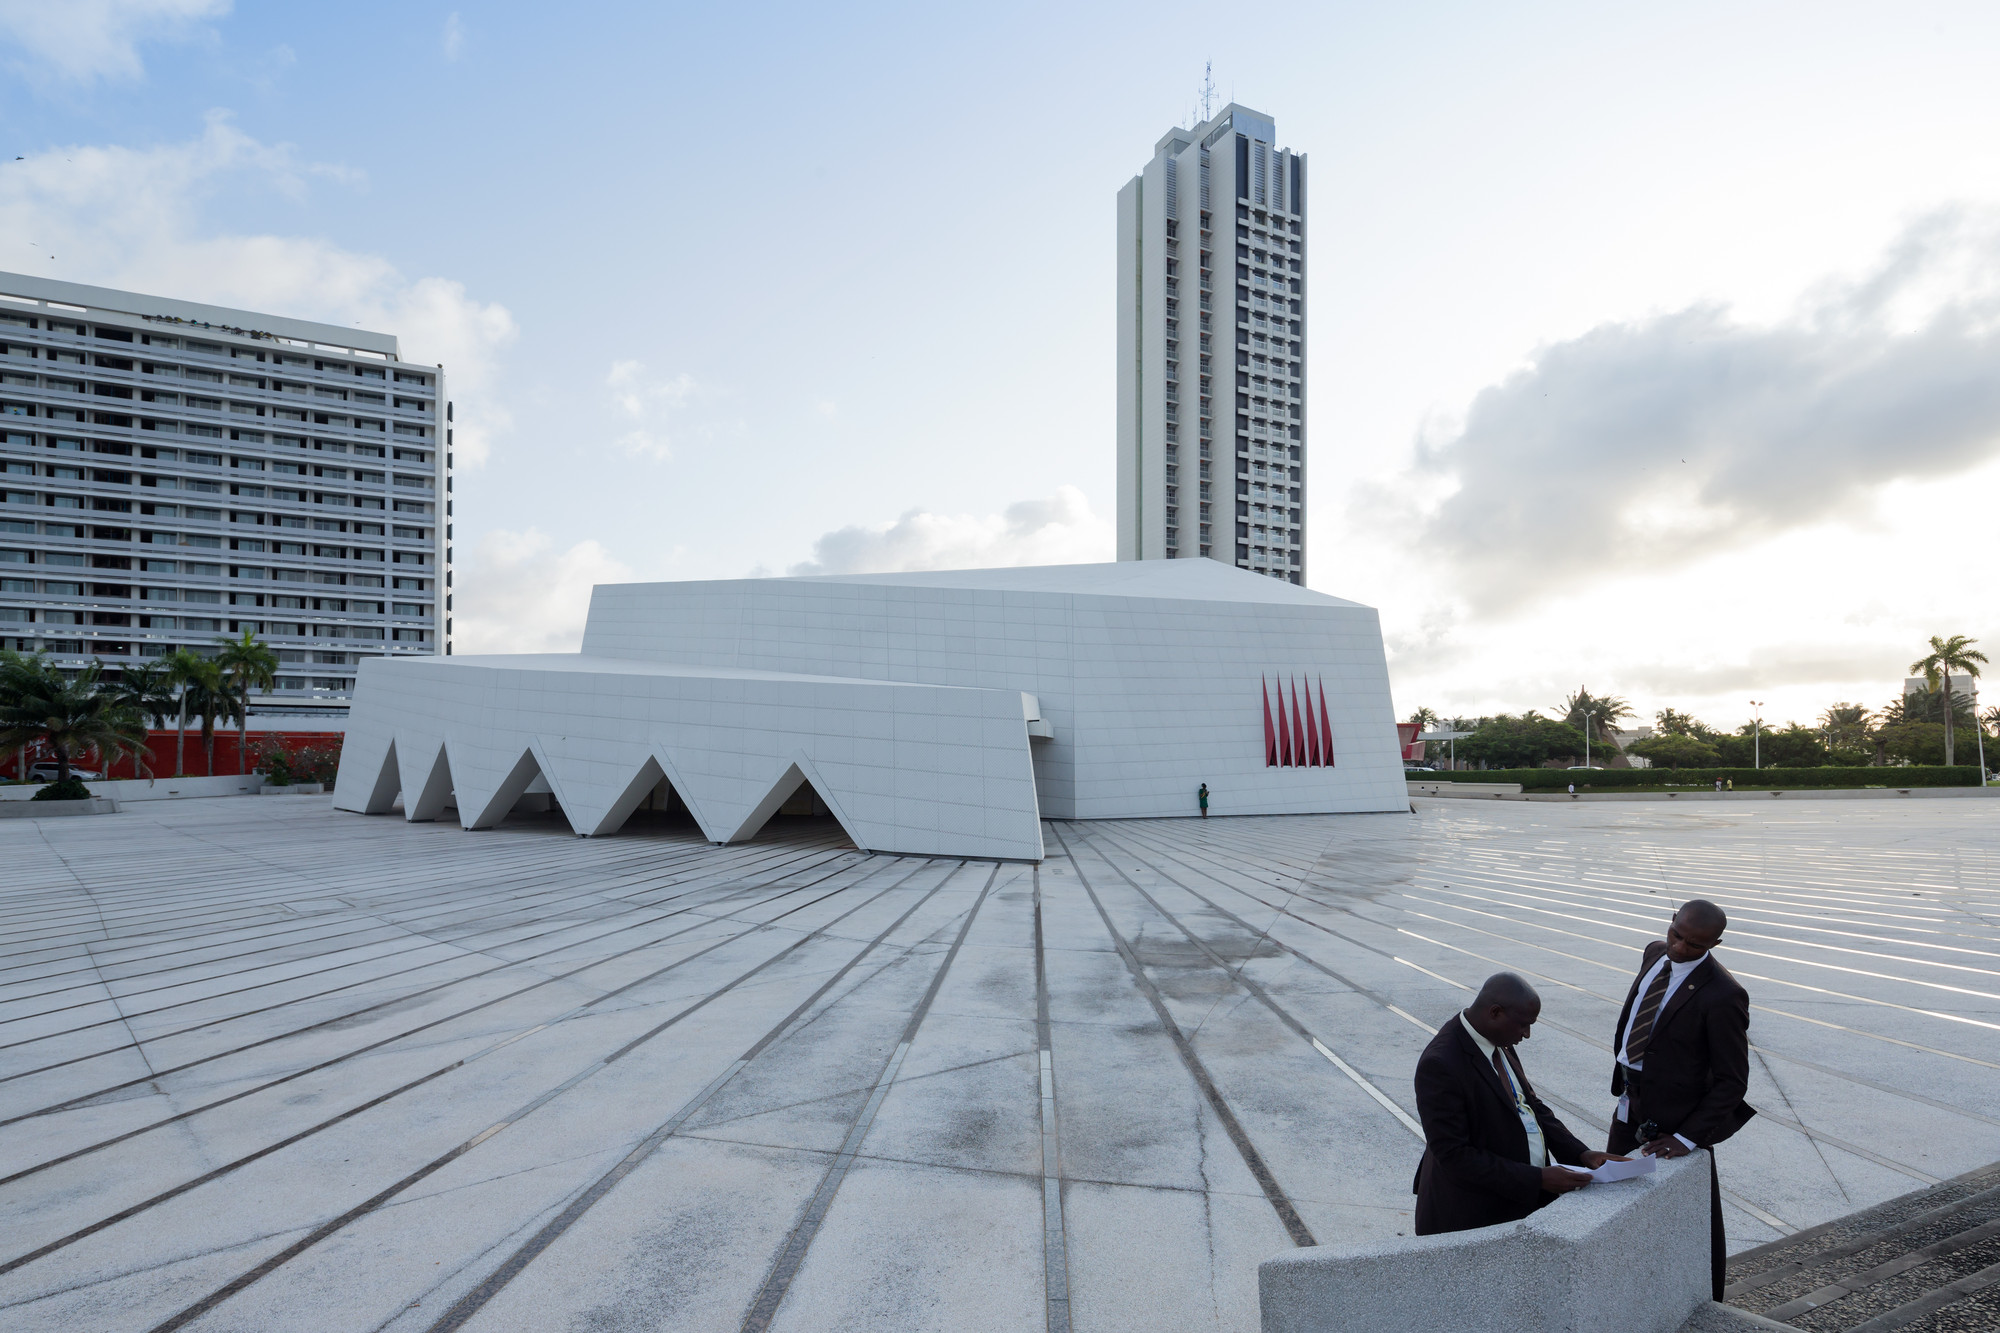 Curral Velho Boa Vista, Gallery of Architecture of Independence - African Modernism - 6